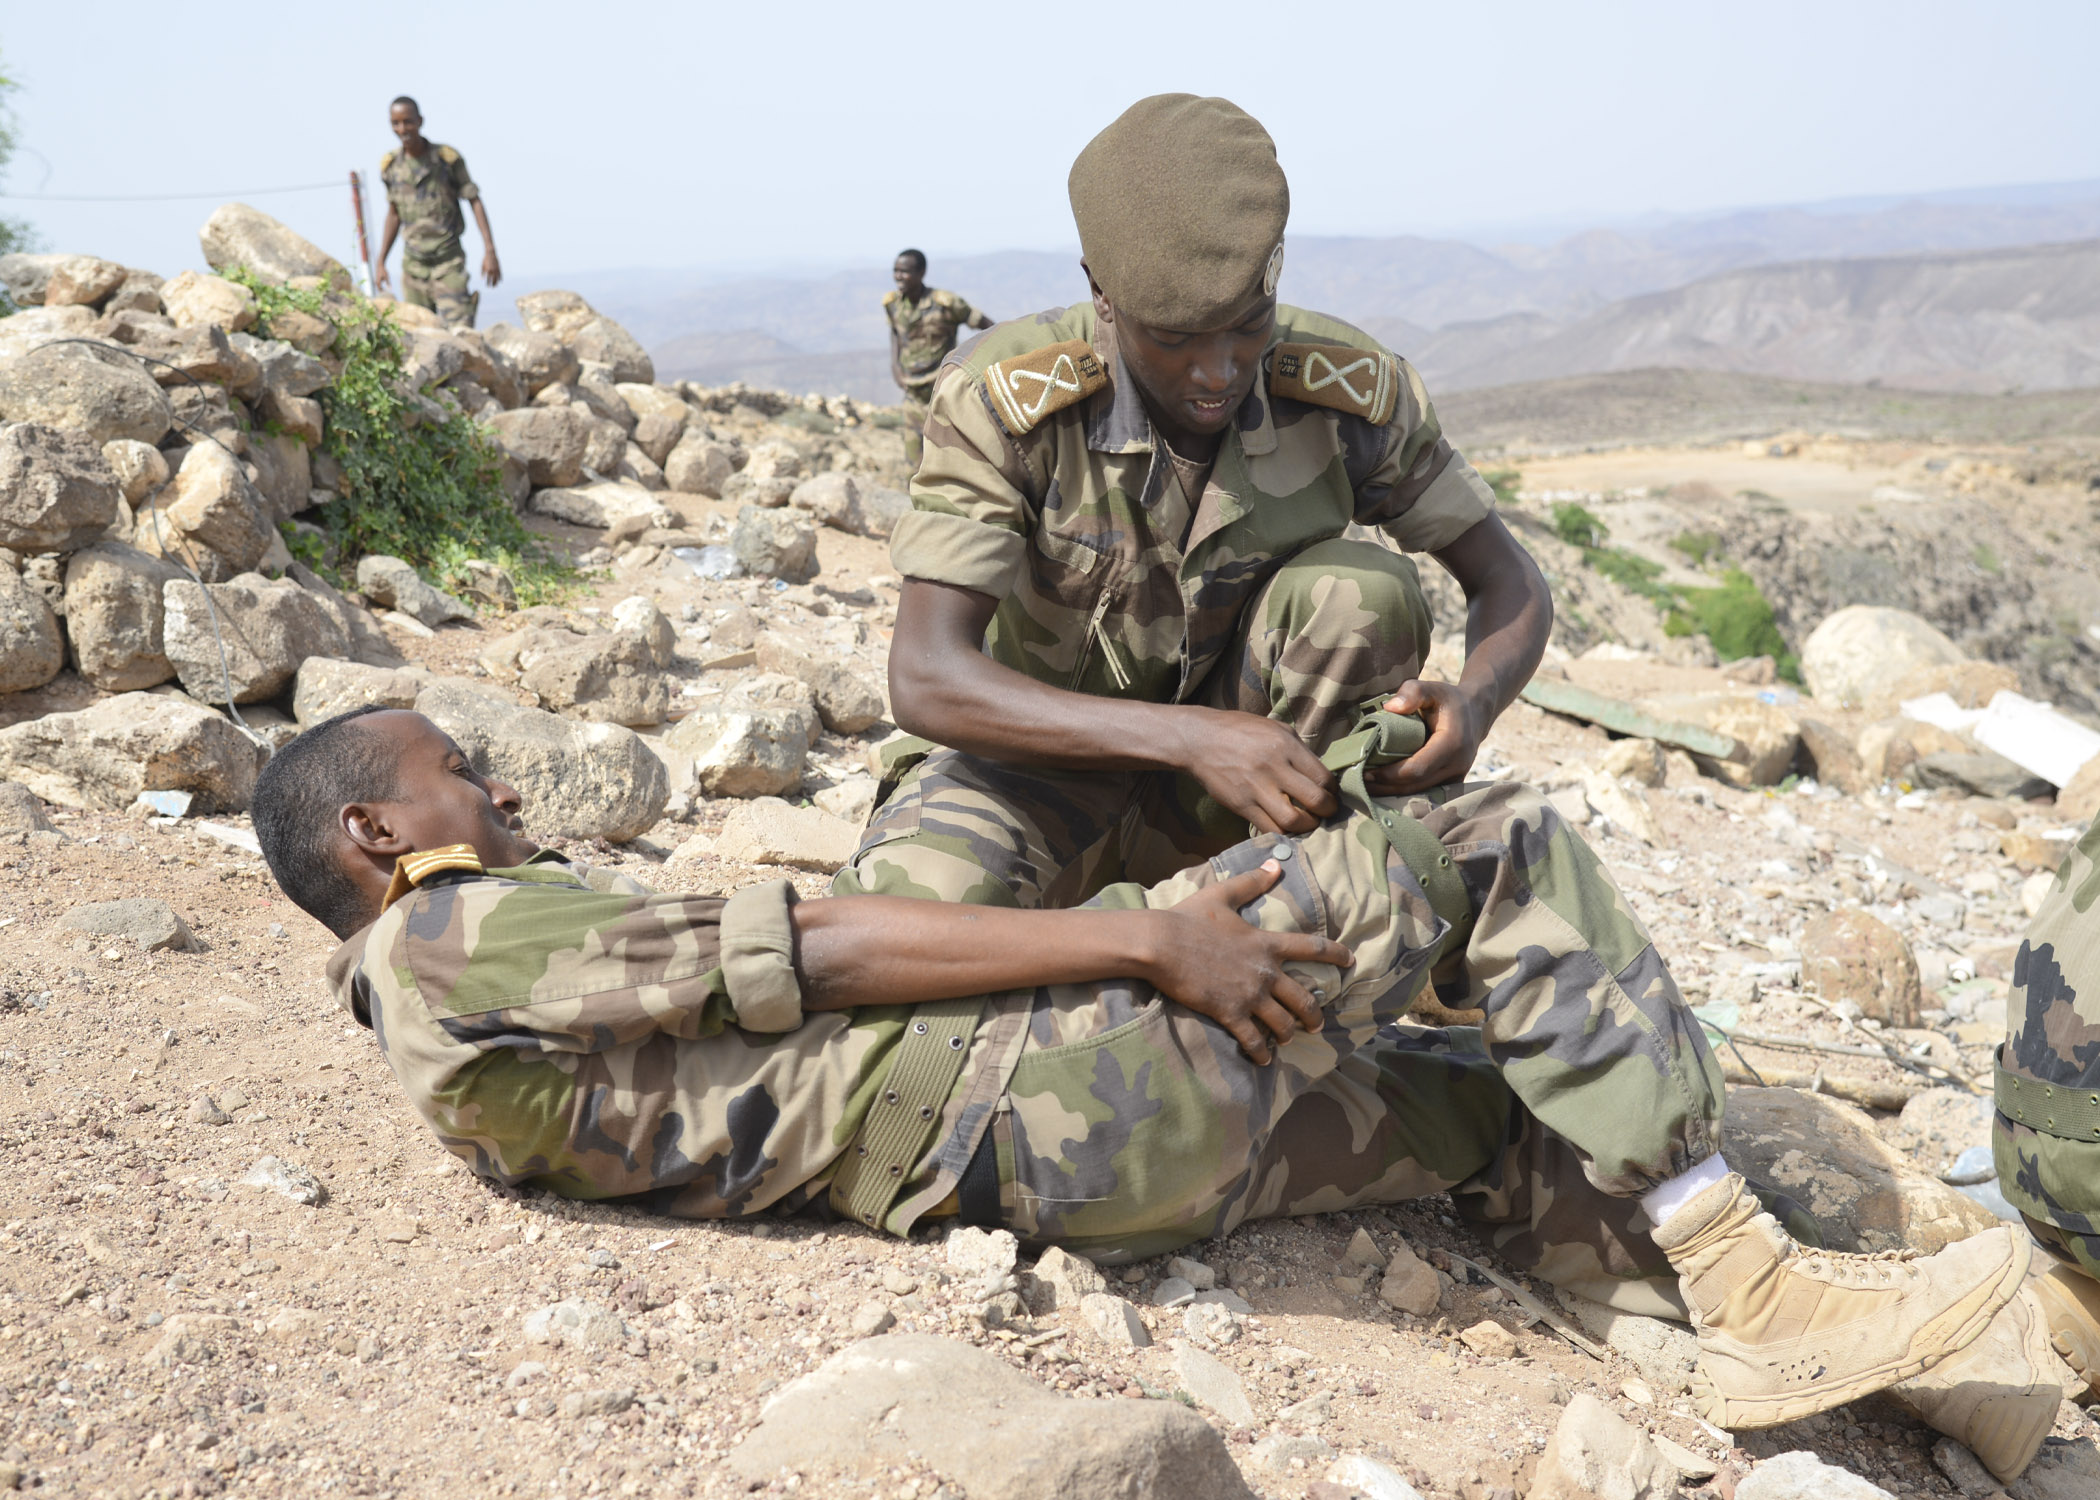 Djiboutian Army cadet Mahdi performs first aid on cadet Abdirahma during improvised explosive device response training at Arta, Djibouti, May 18, 2016. The cadets were taught what to do in case of a detonation, injury, and how to provide security and re-establish chain of command in an emergency. (U.S. Air Force photo by Senior Airman Benjamin Raughton/Released)